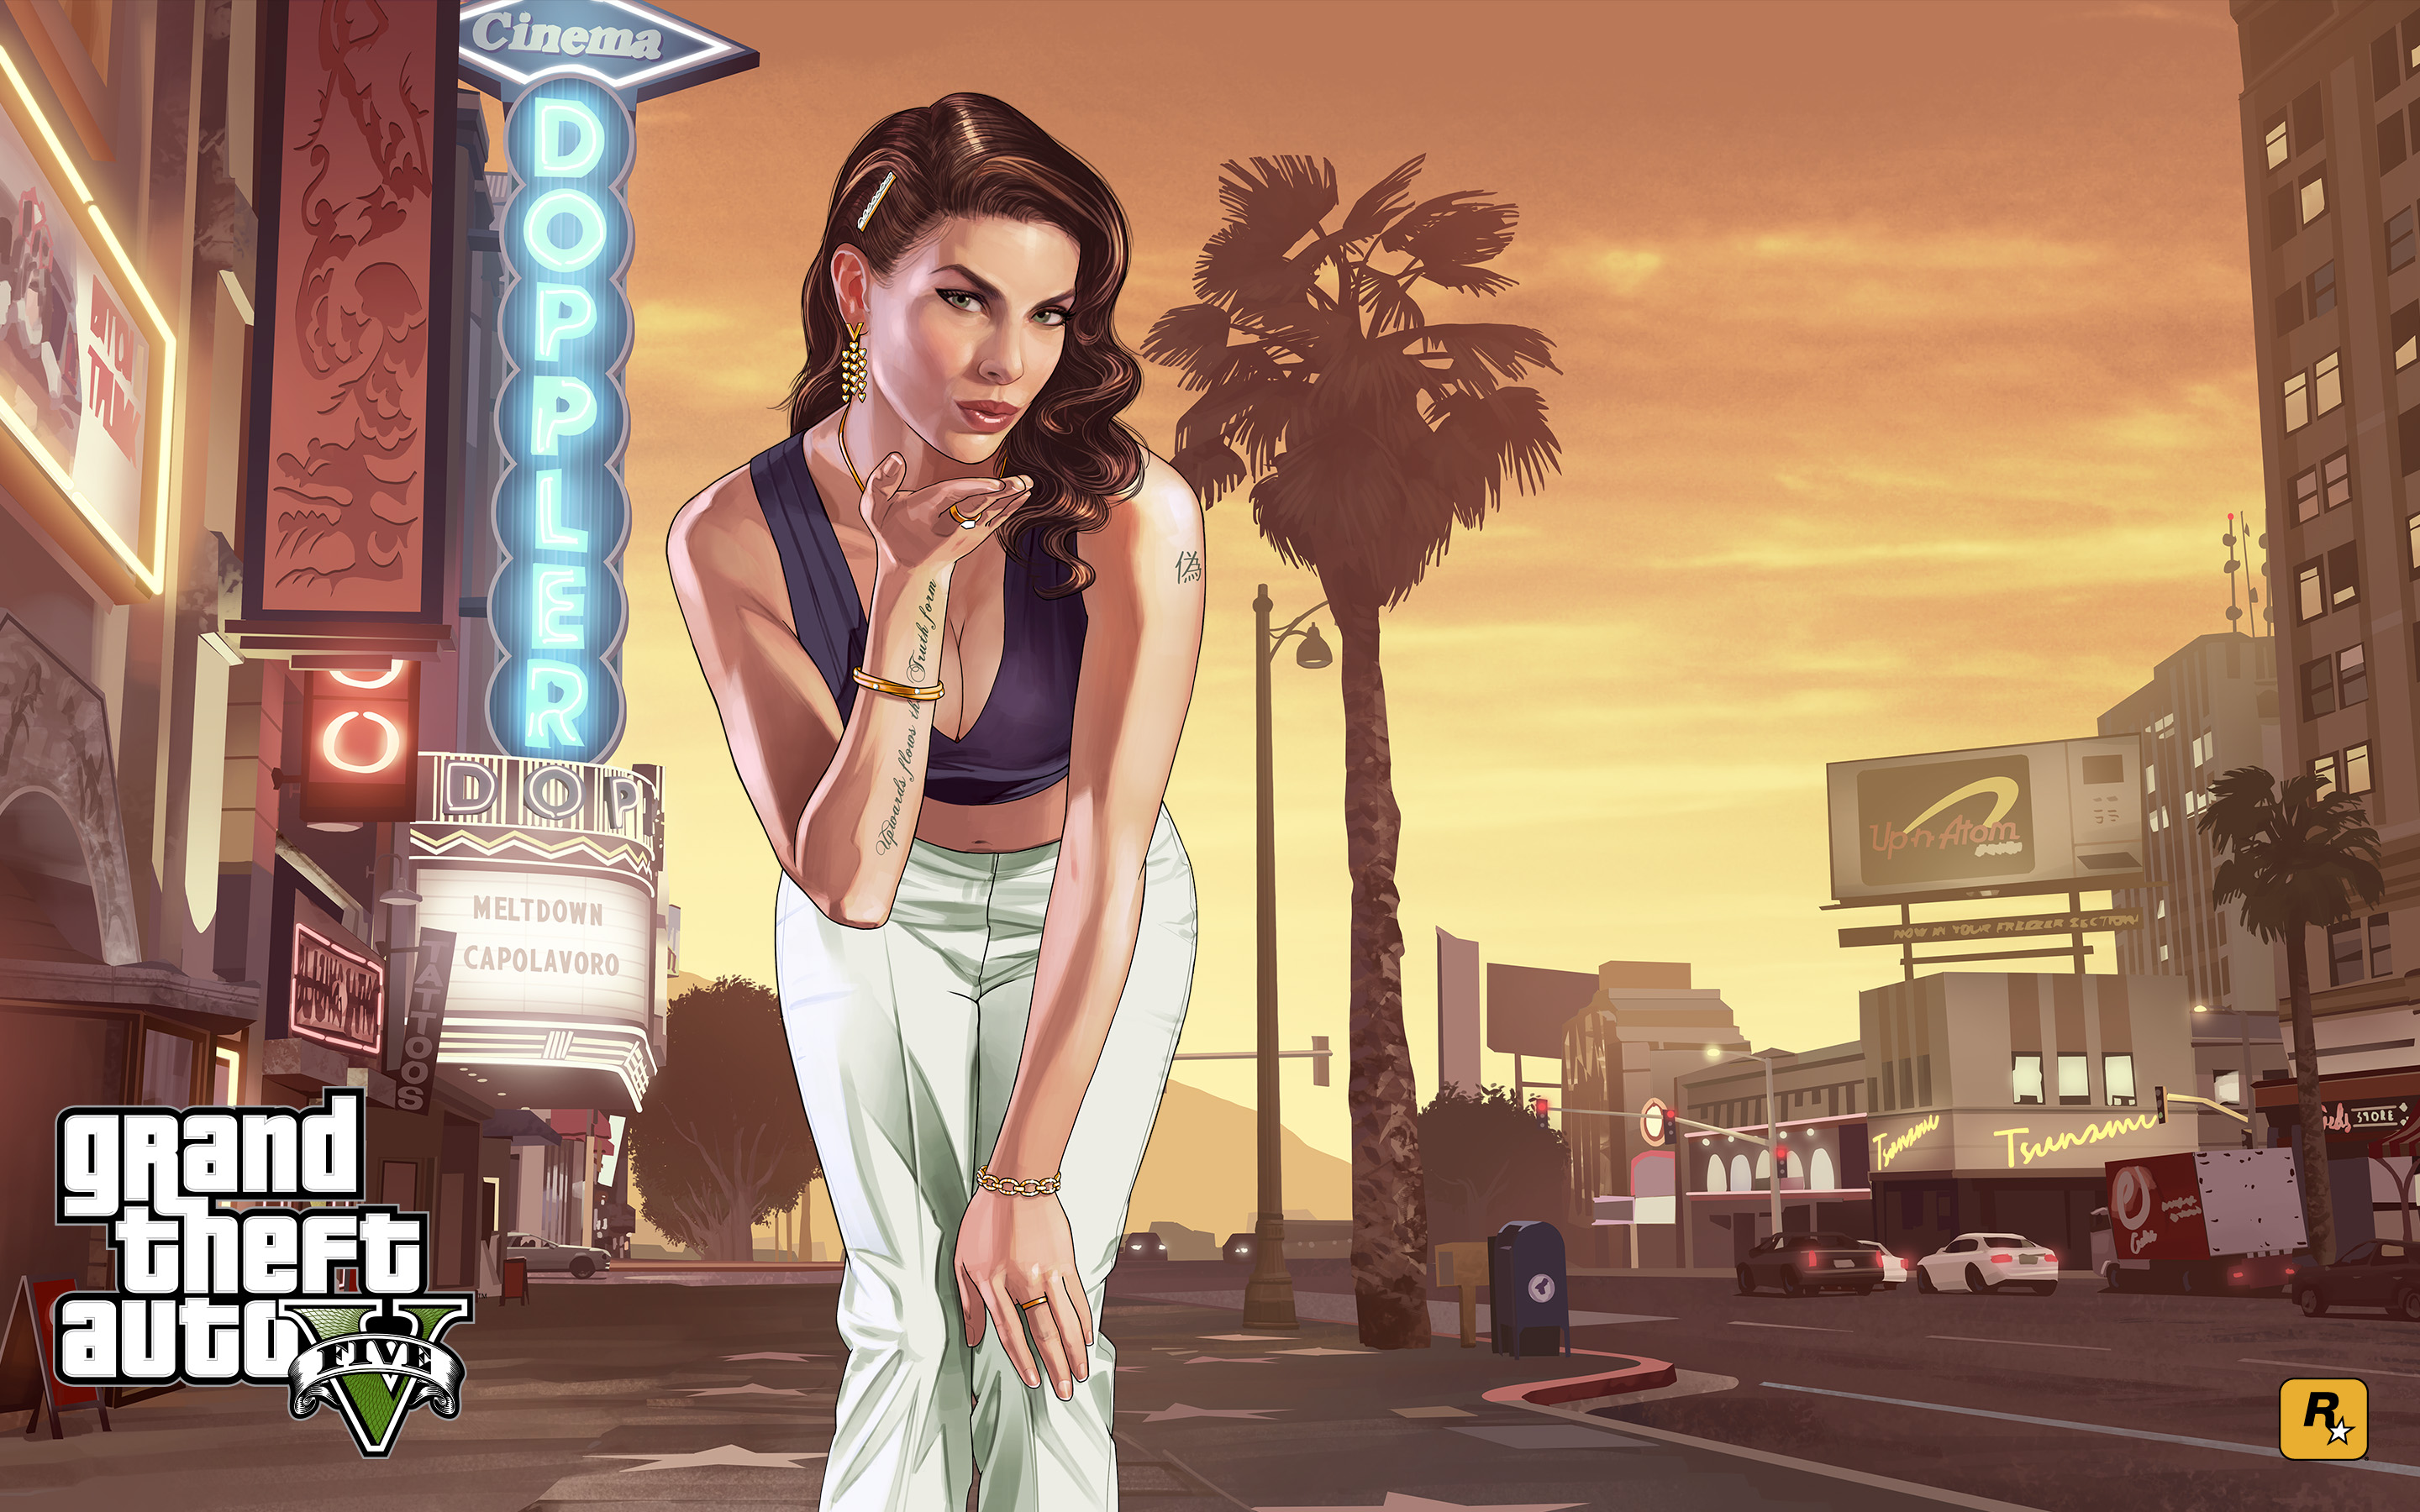 Grand Theft Auto V Images HD Wallpaper And Background Photos